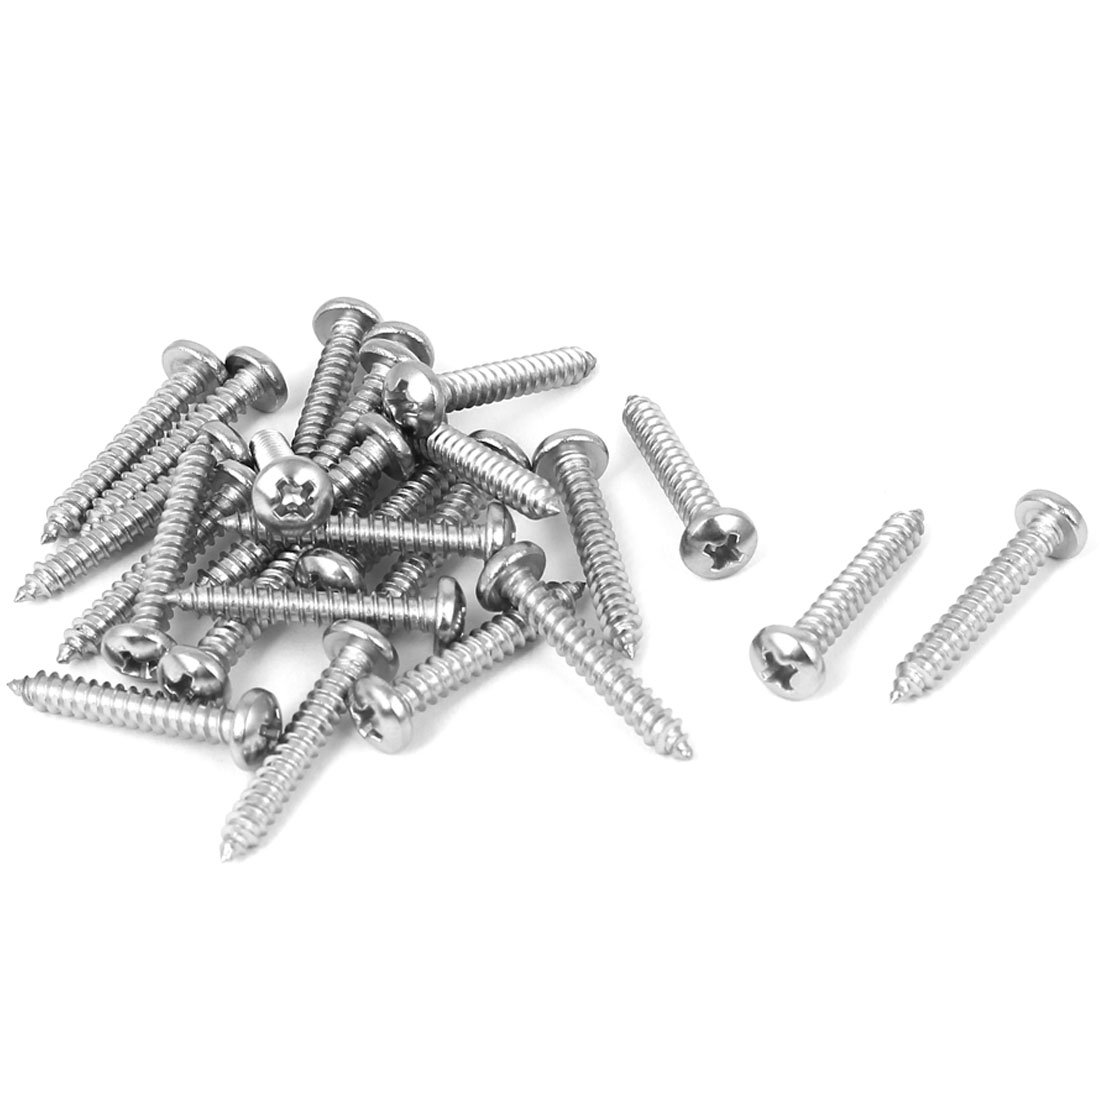 uxcell #7 M3.9x25mm Phillips Round Pan Head Self Tapping Screws 25pcs